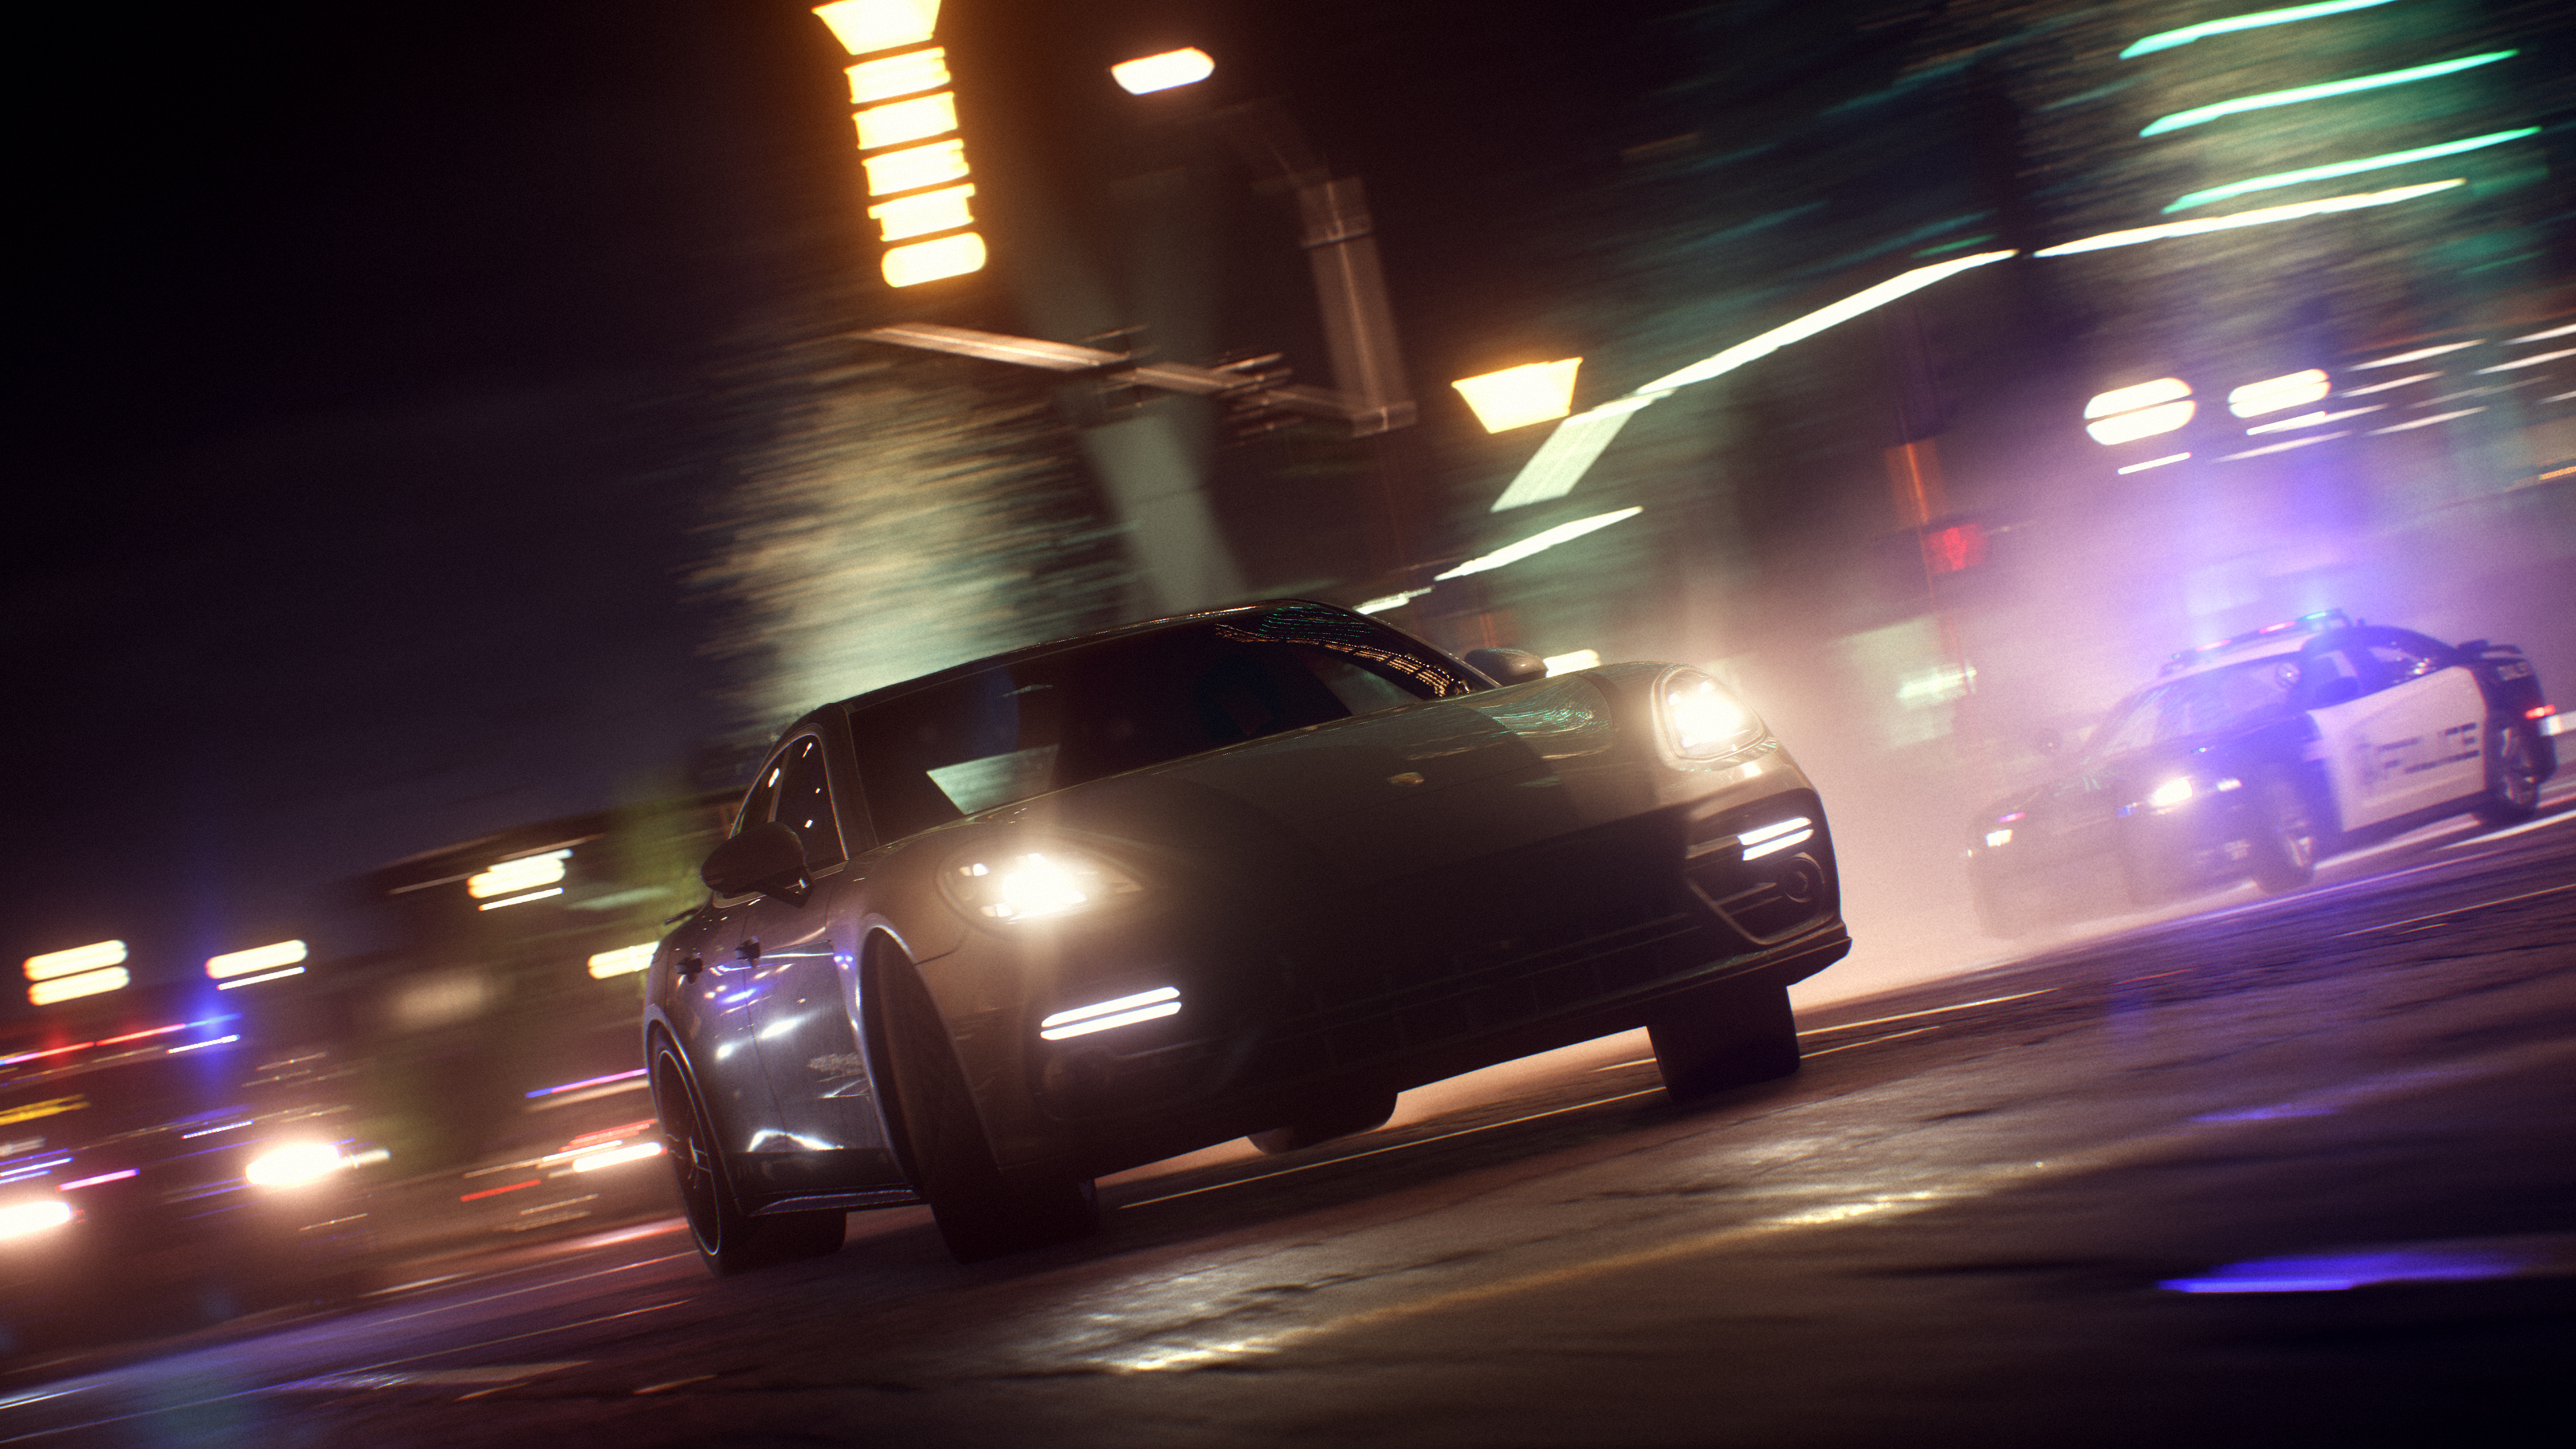 EAs new Need for Speed Payback looks very fast and 3840x2160